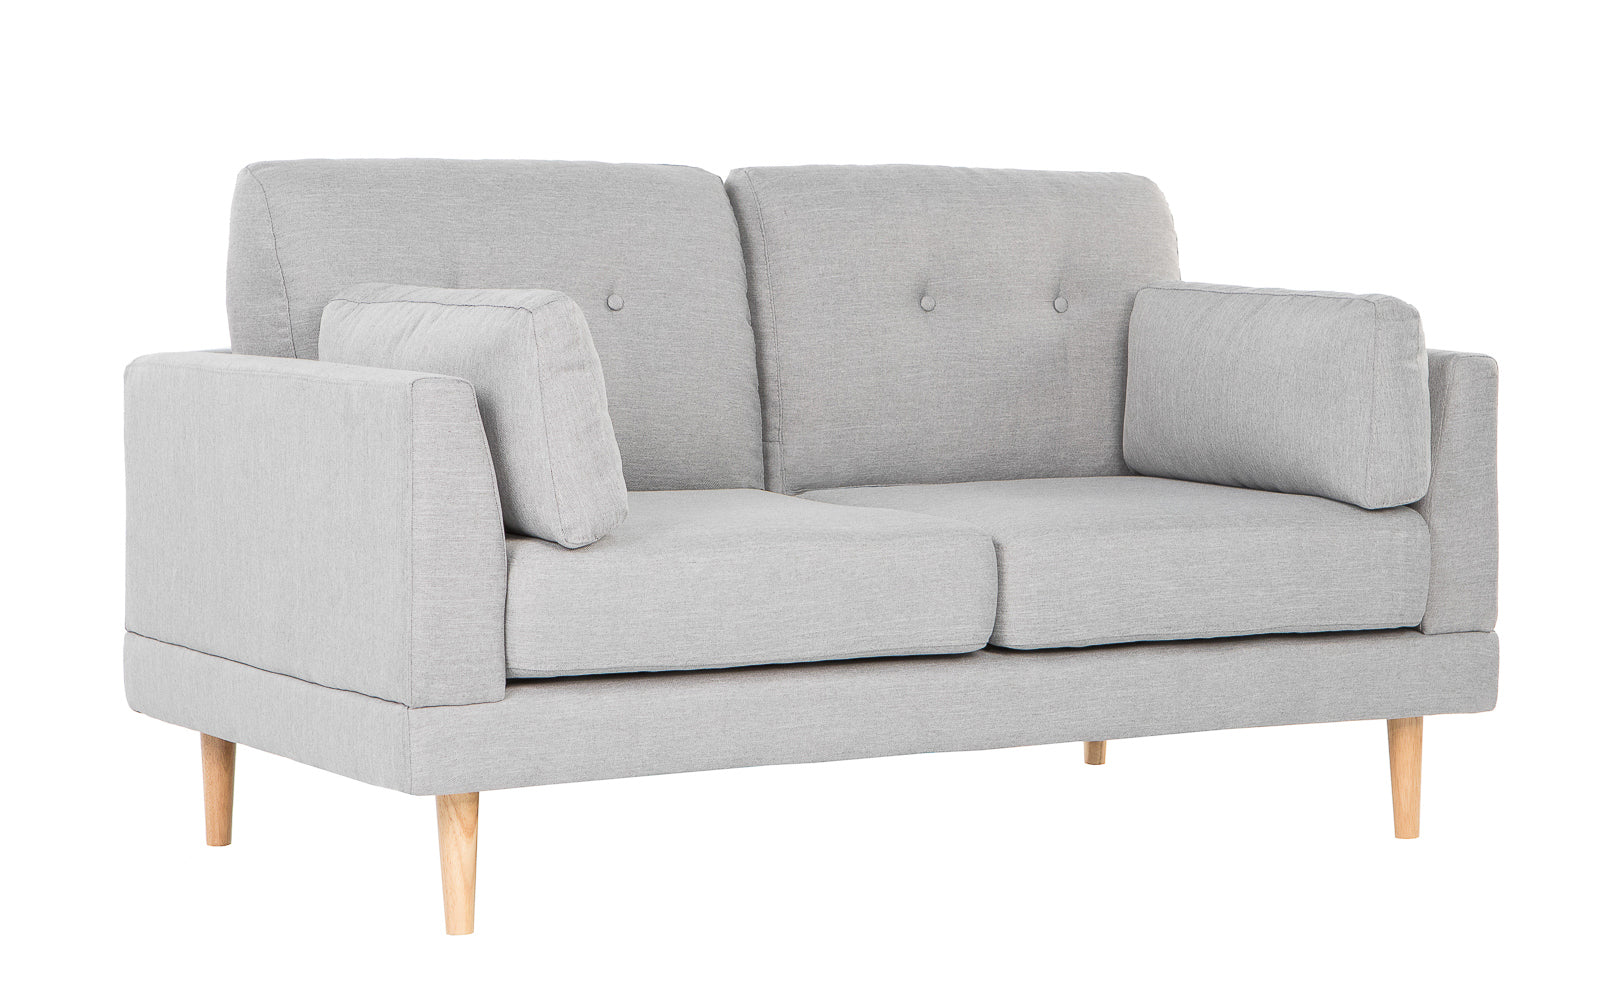 Unique Gray Loveseat For Your Home Design 2018